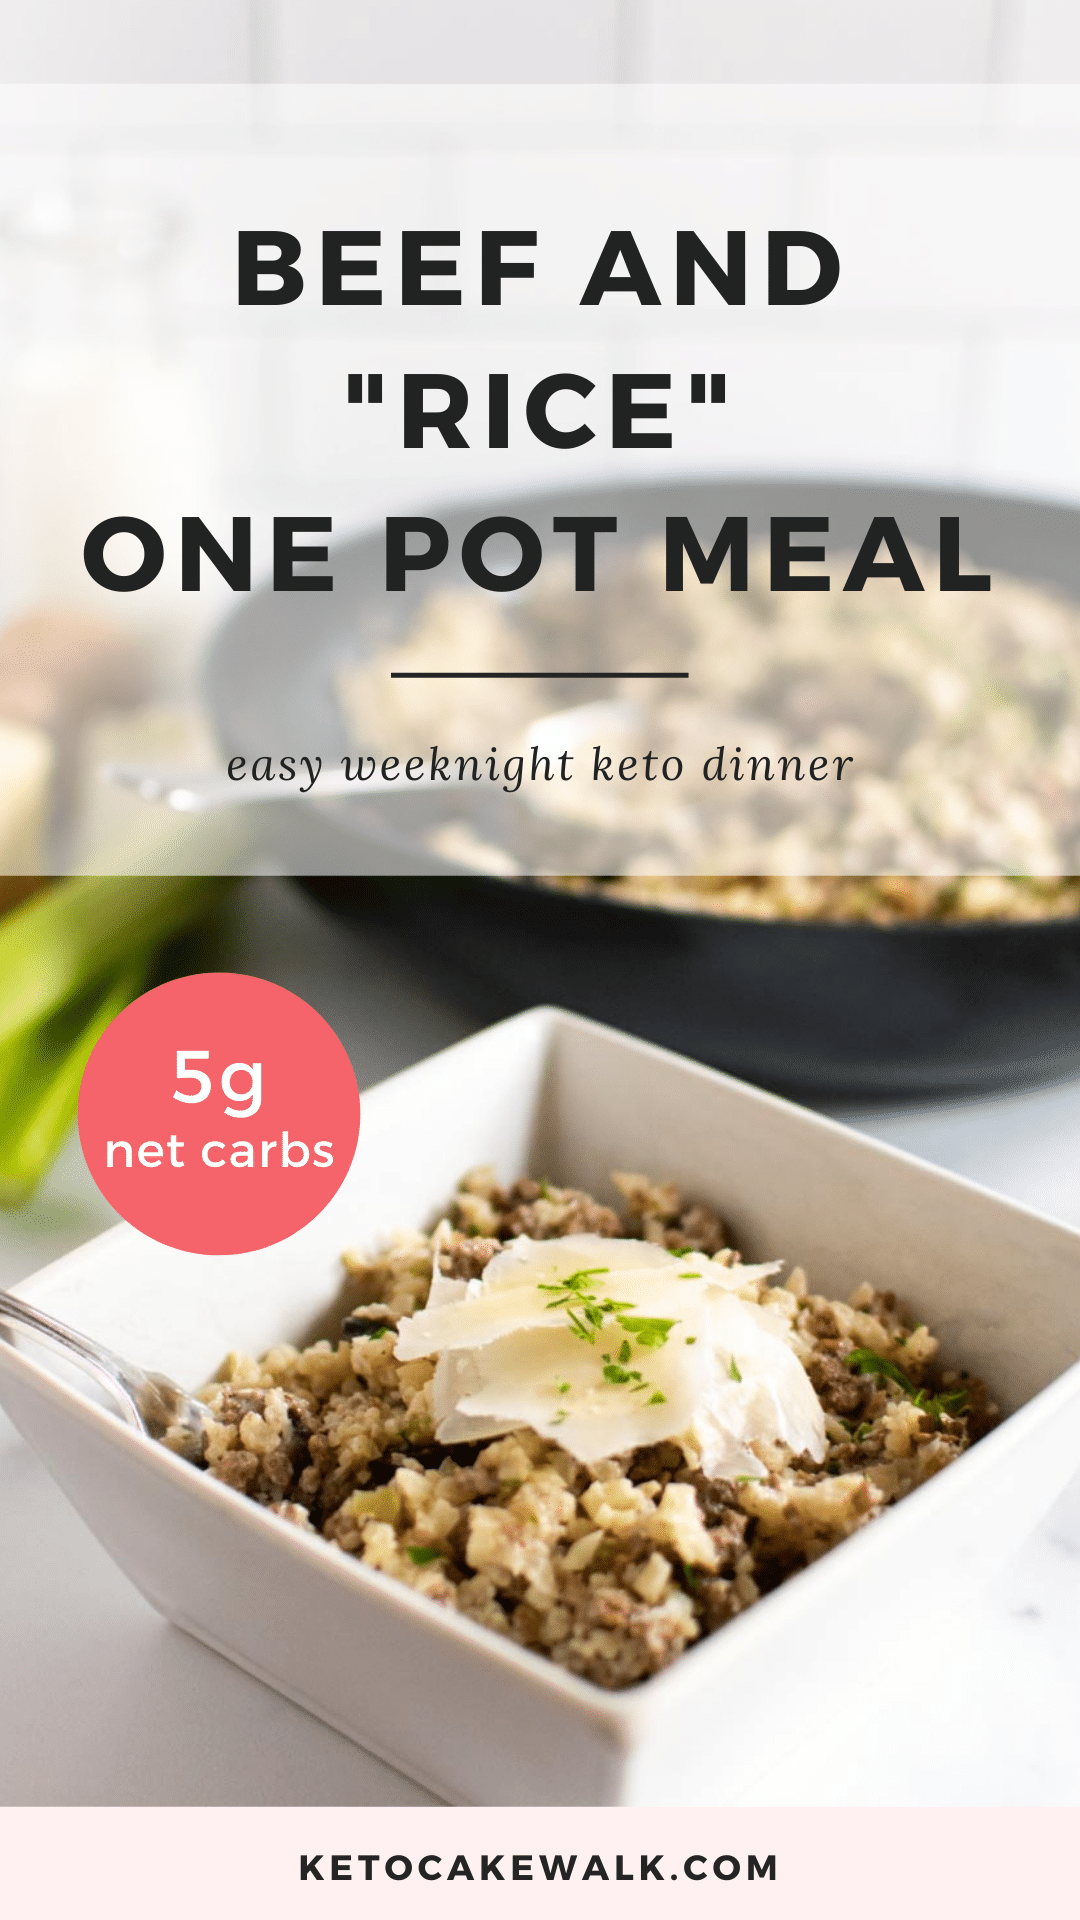 This beef and cauliflower rice skillet is a super easy low carb meal to make on a weeknight. Cooks all in one skillet so you have fewer dishes to clean! #lowcarb #keto #skillet #dinner #onepot #easy #weeknight #simple #glutenfree #grainfree